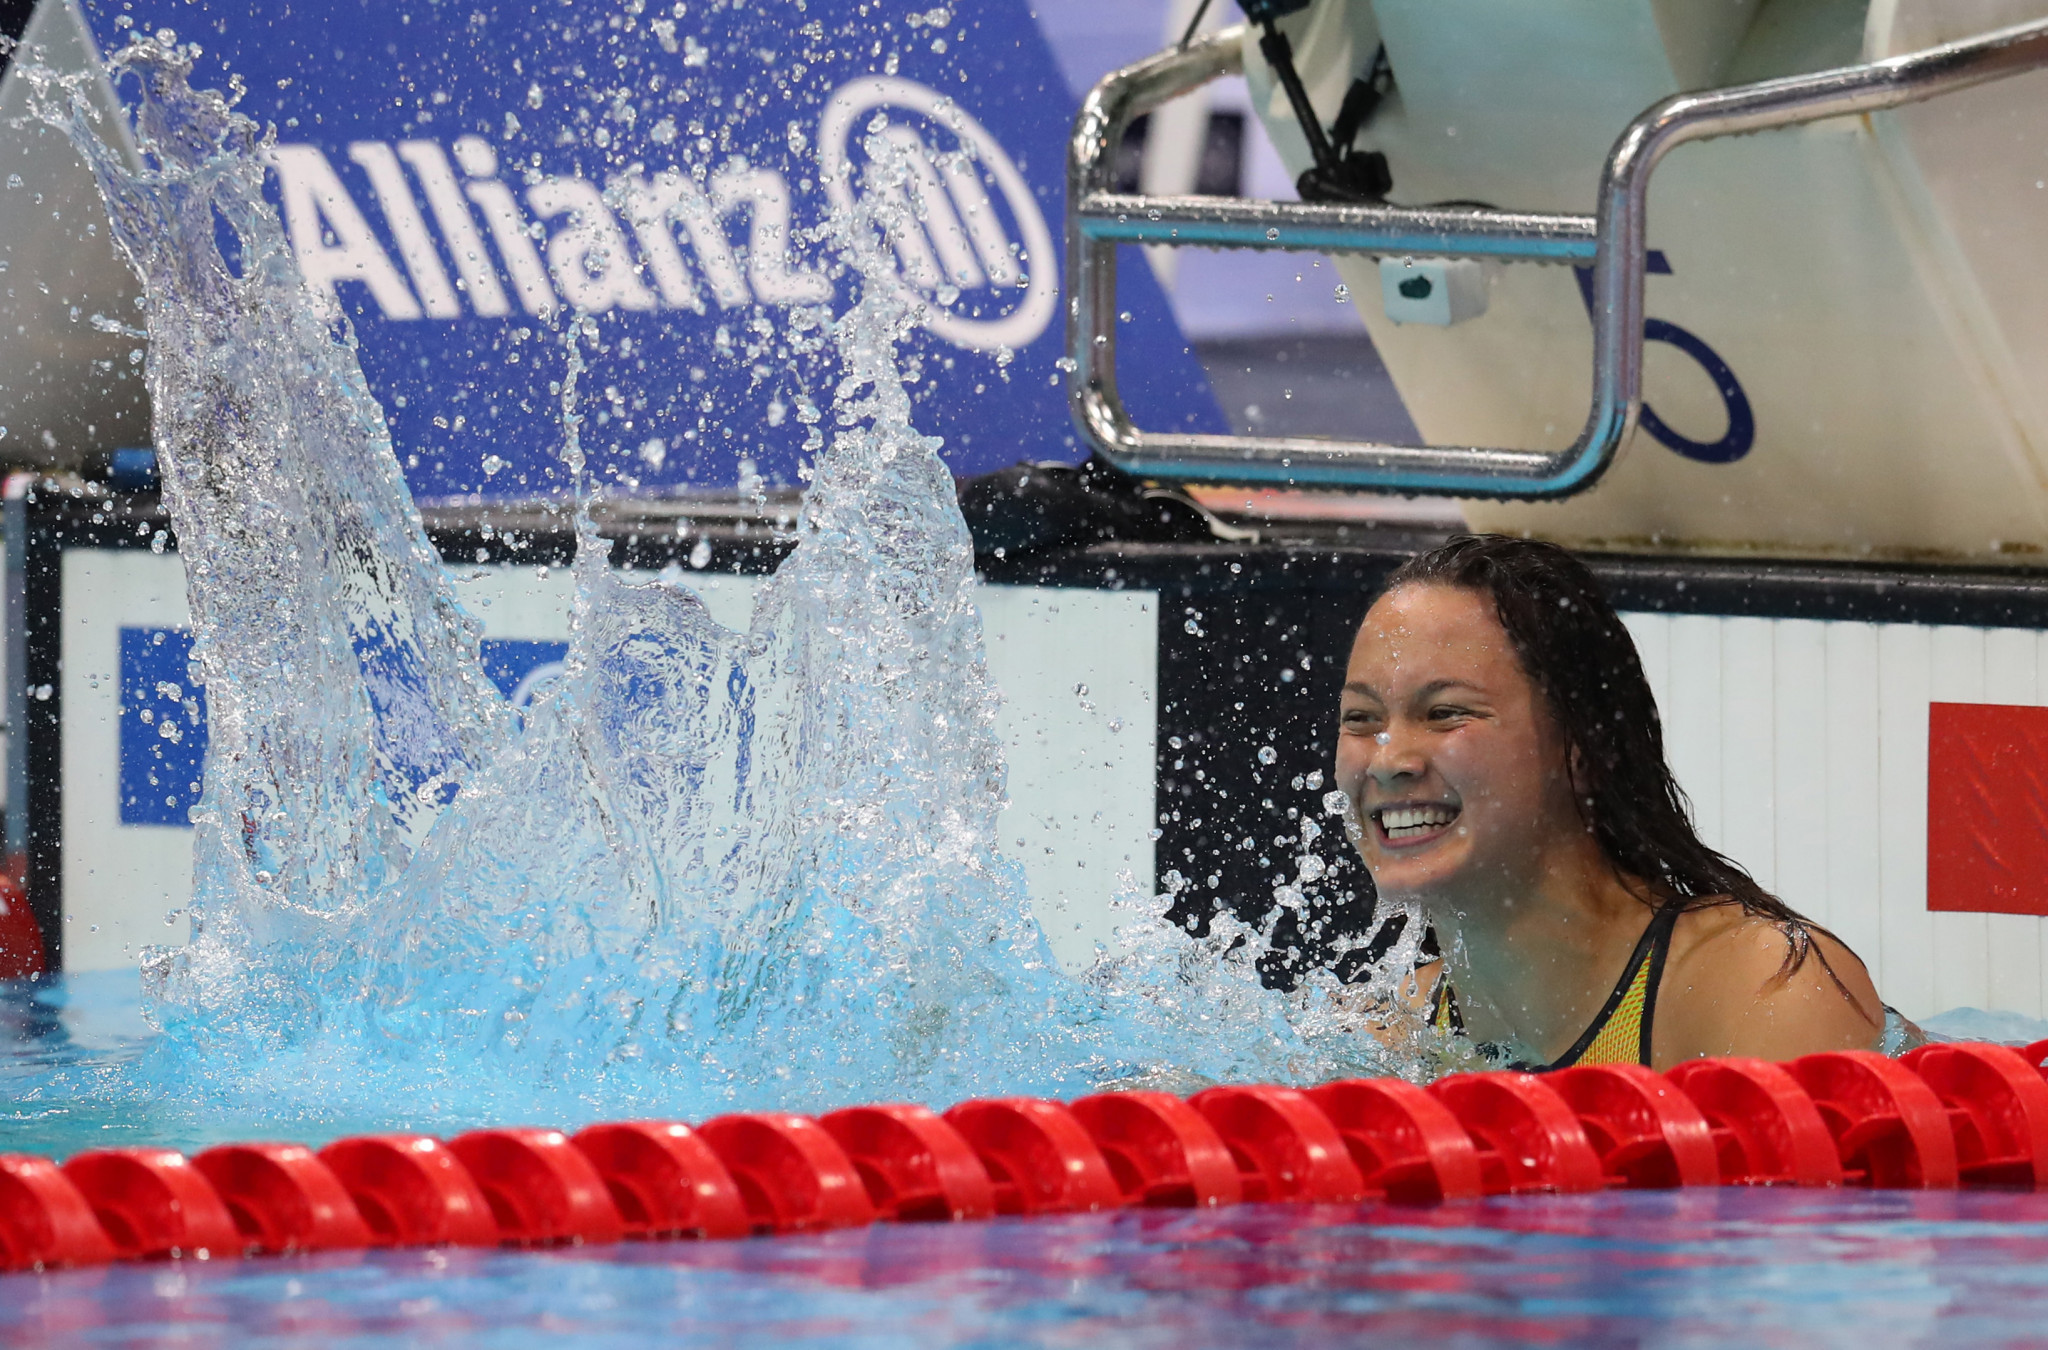 Tai wins seventh gold on final night at World Para Swimming Championships